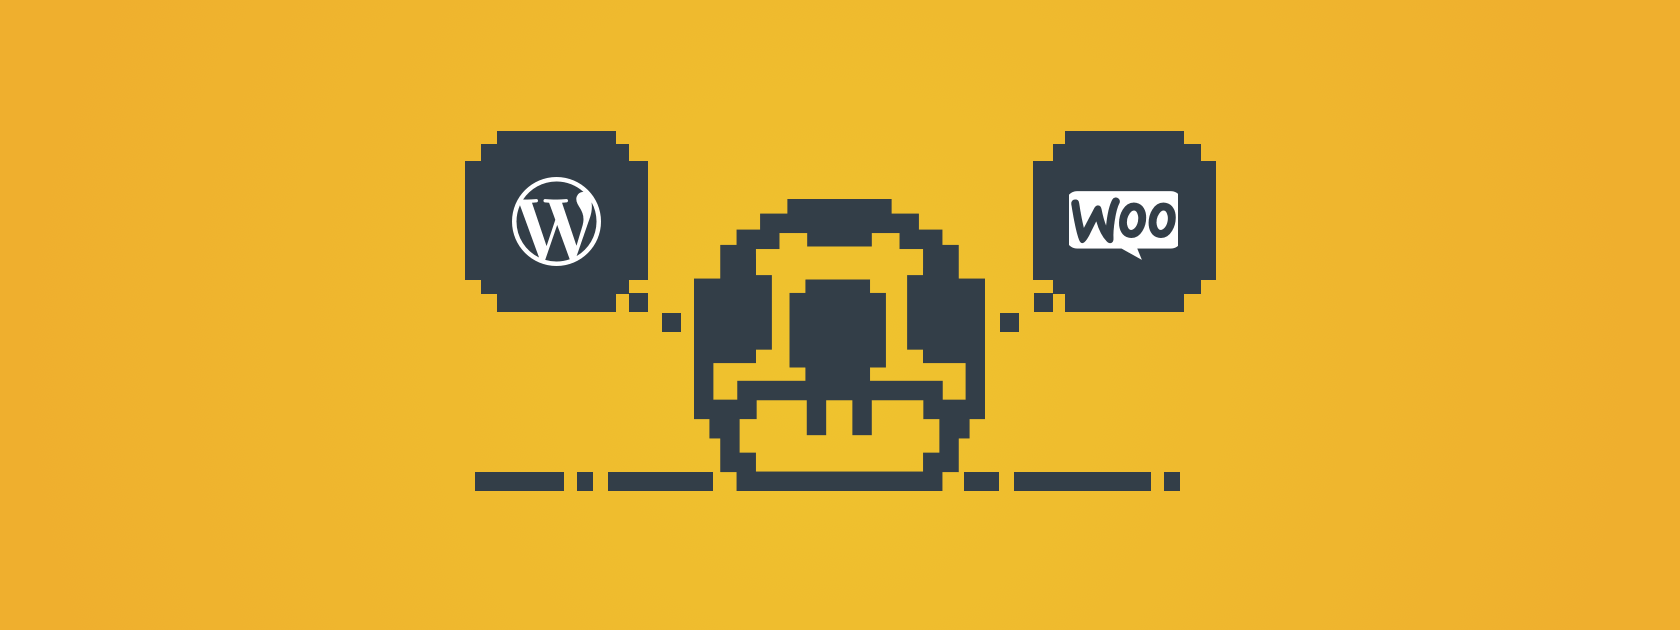 Upgrading WordPress – Silicon Dales Featured in Codeable Blog featured image